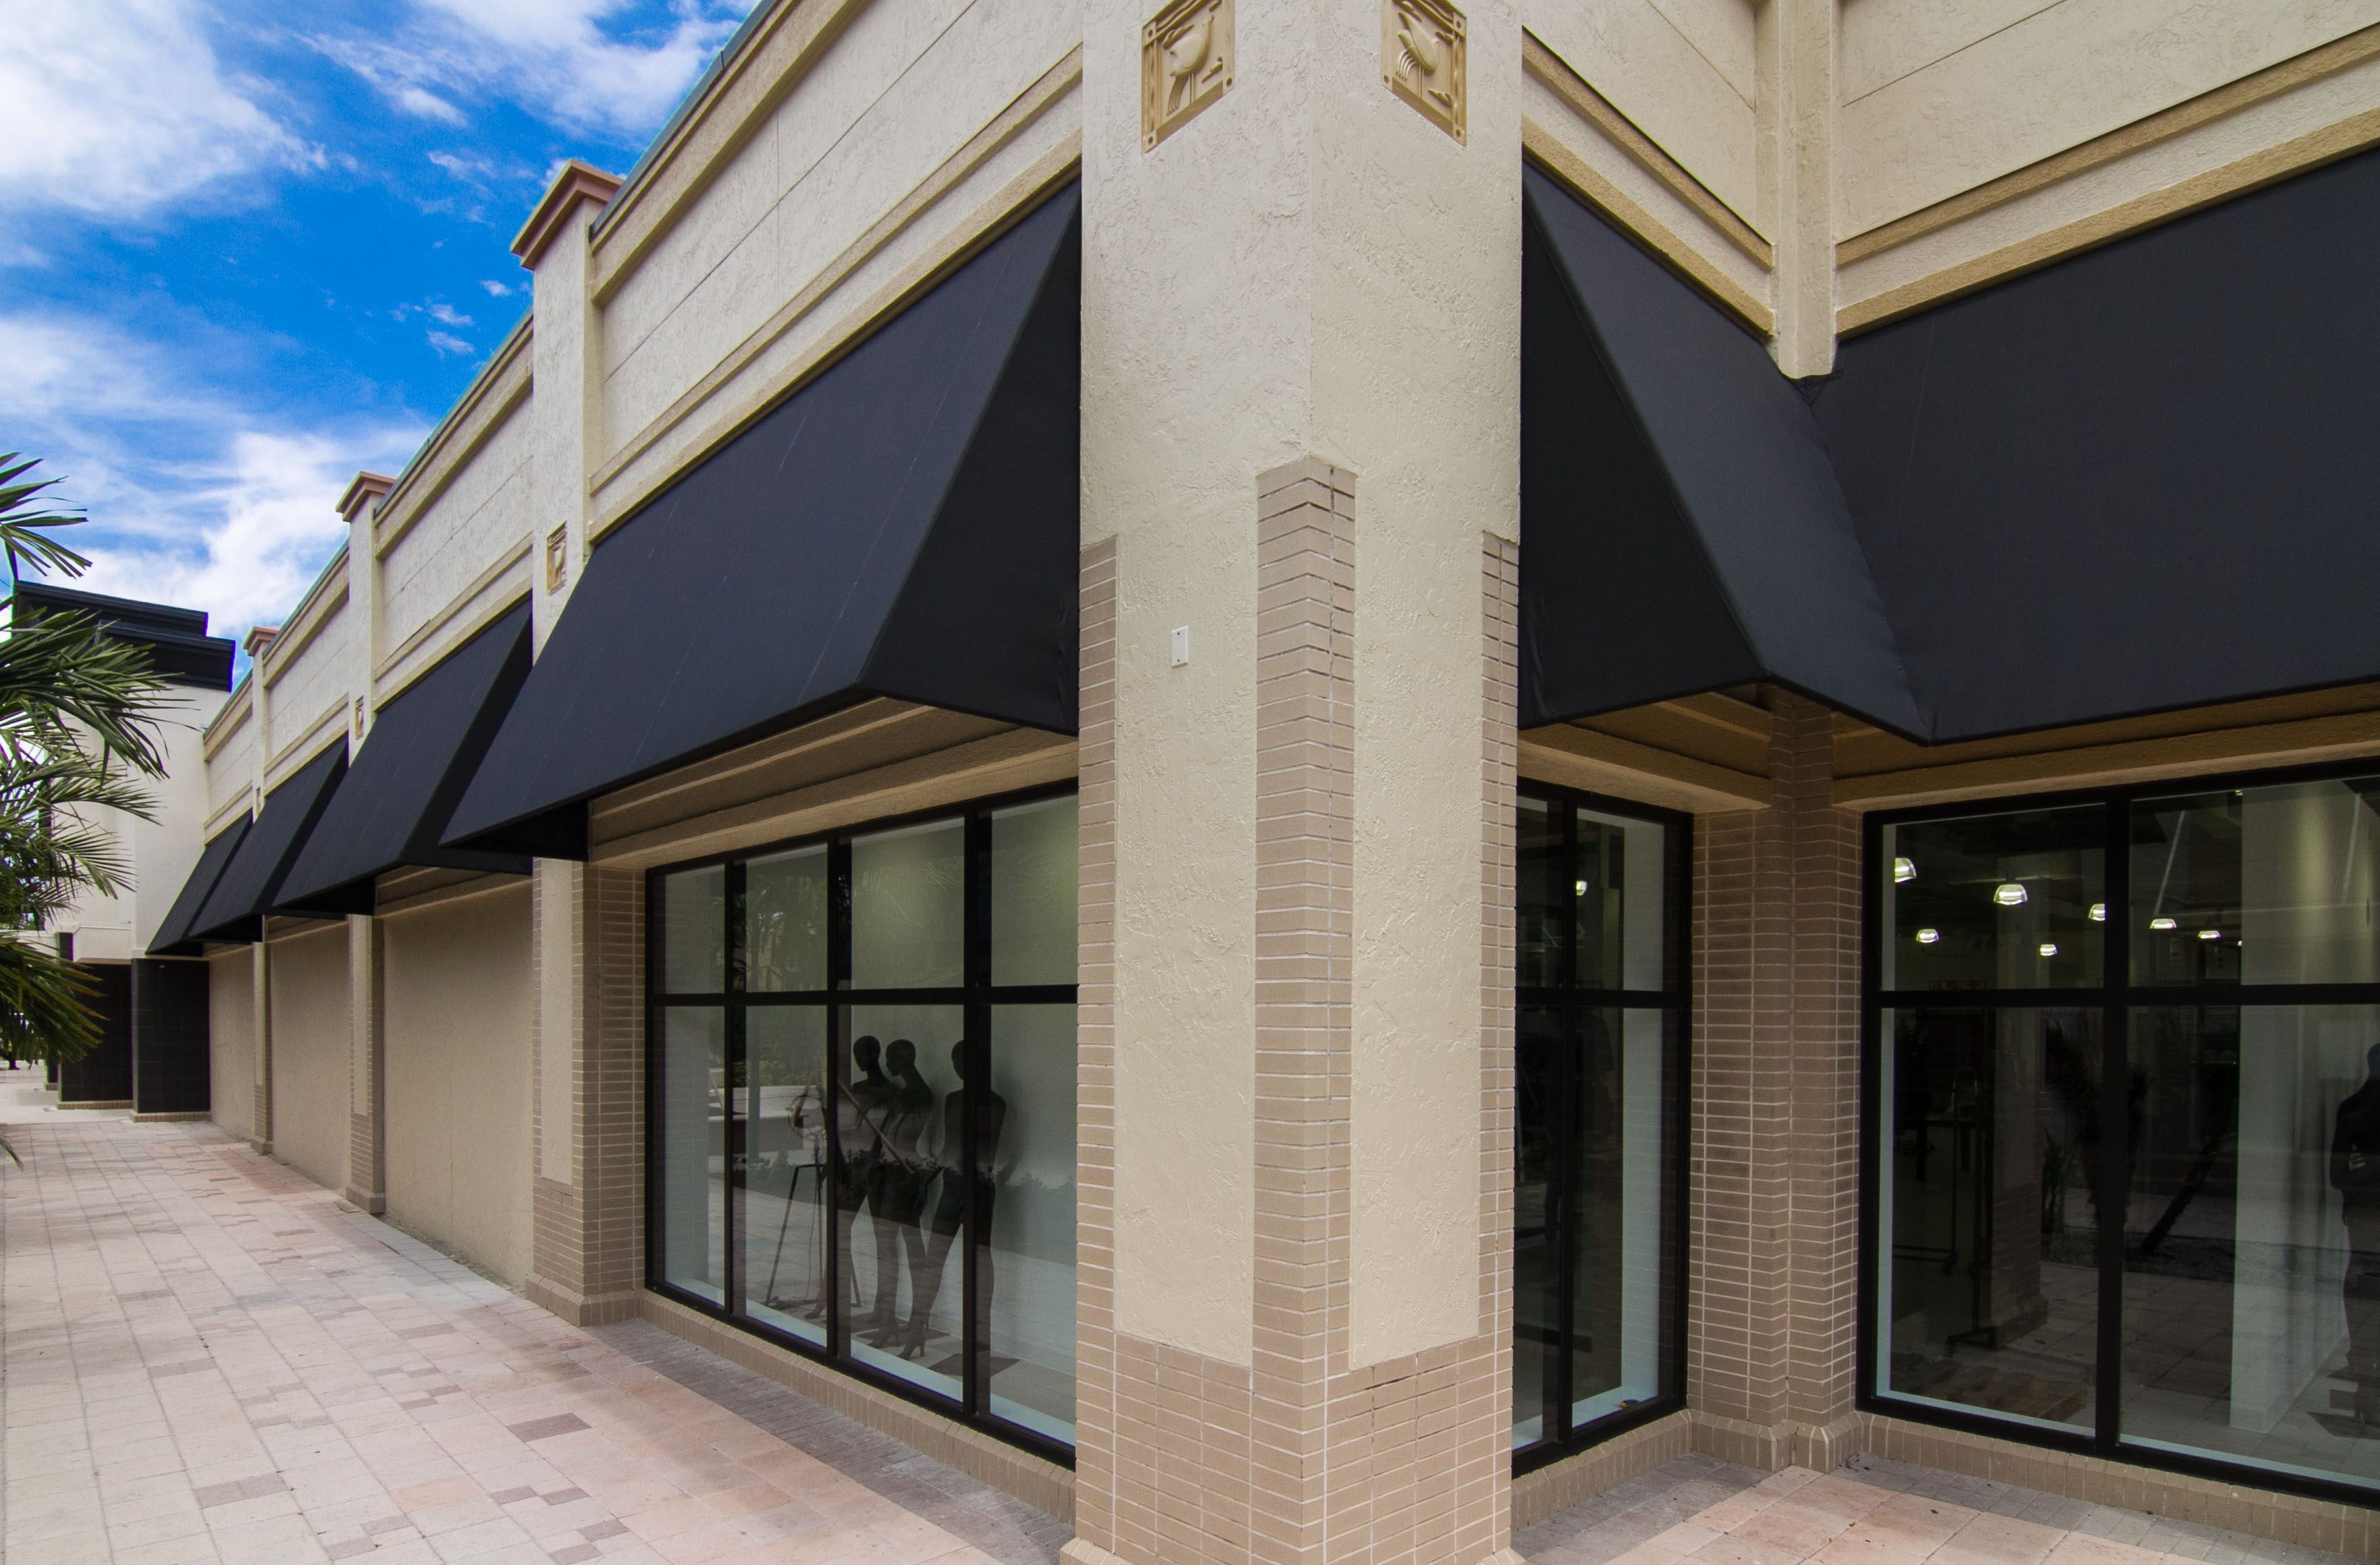 signage and color existing the street boise type that pp fabric wood will steel canopies replace for terrace model exterior are studies capital ready replacement new awnings main awning capitol include ccdc projects to updates